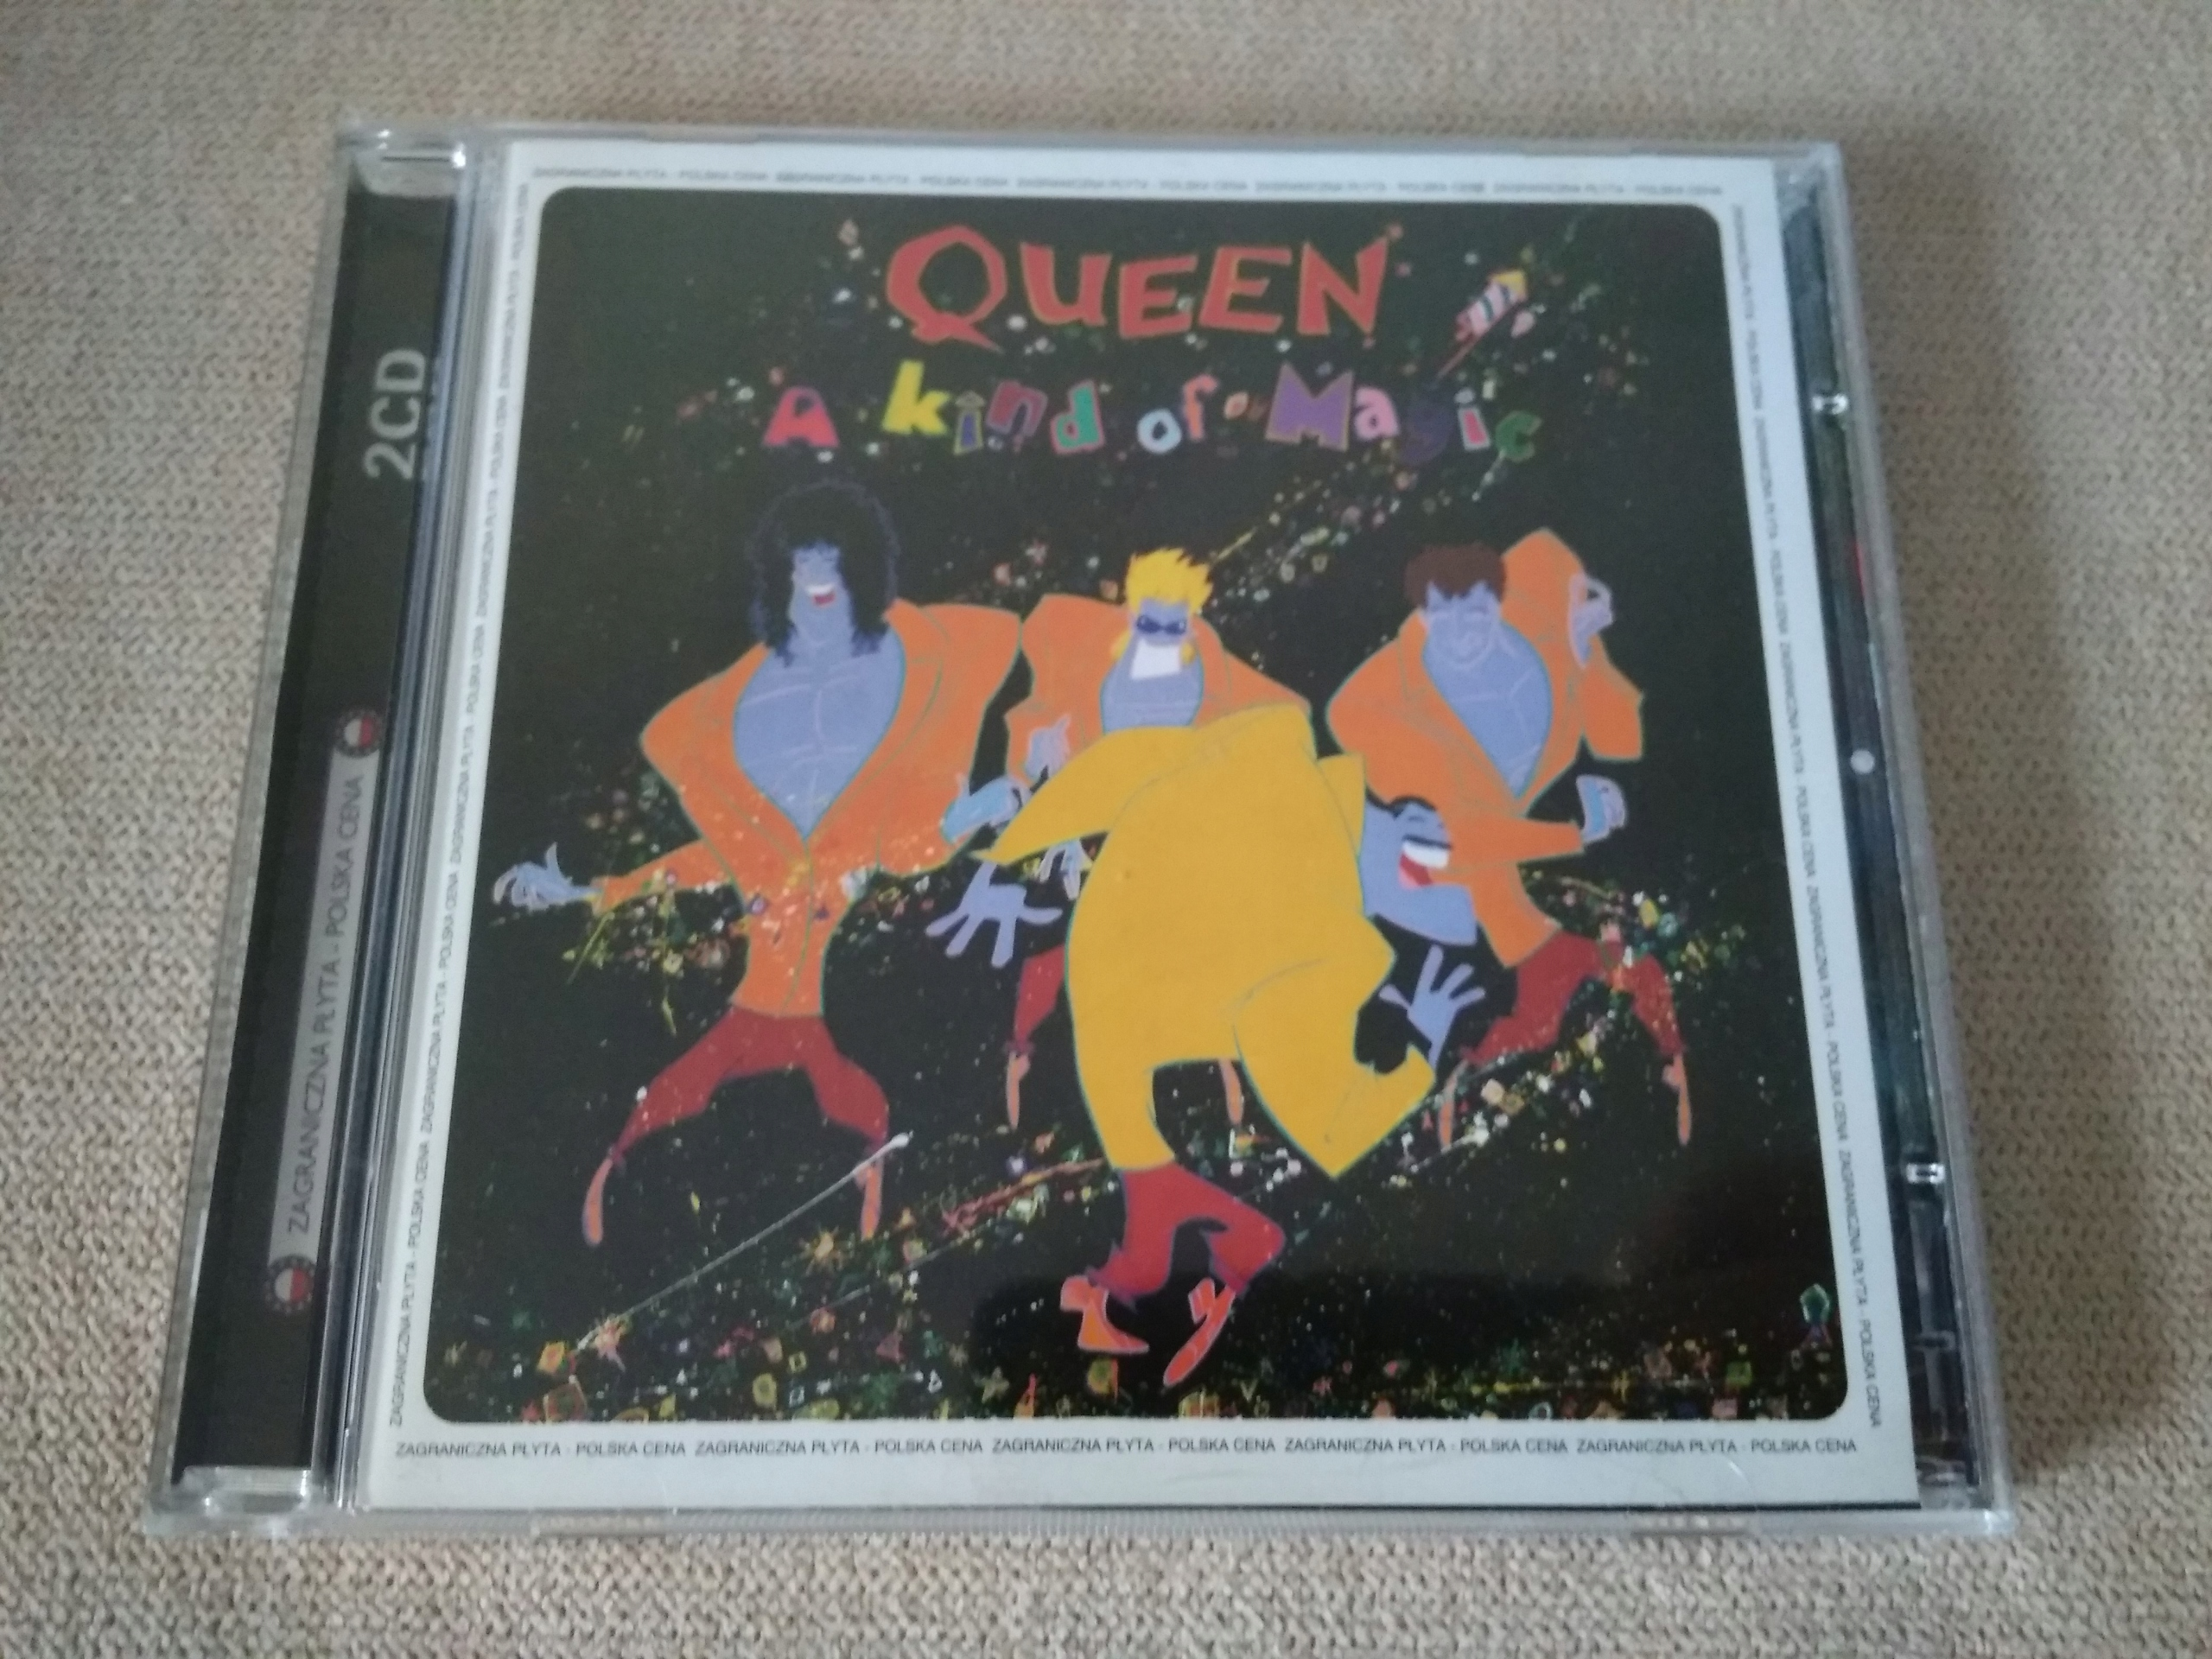 QUEEN A KIND OF MAGIE CD BCM !